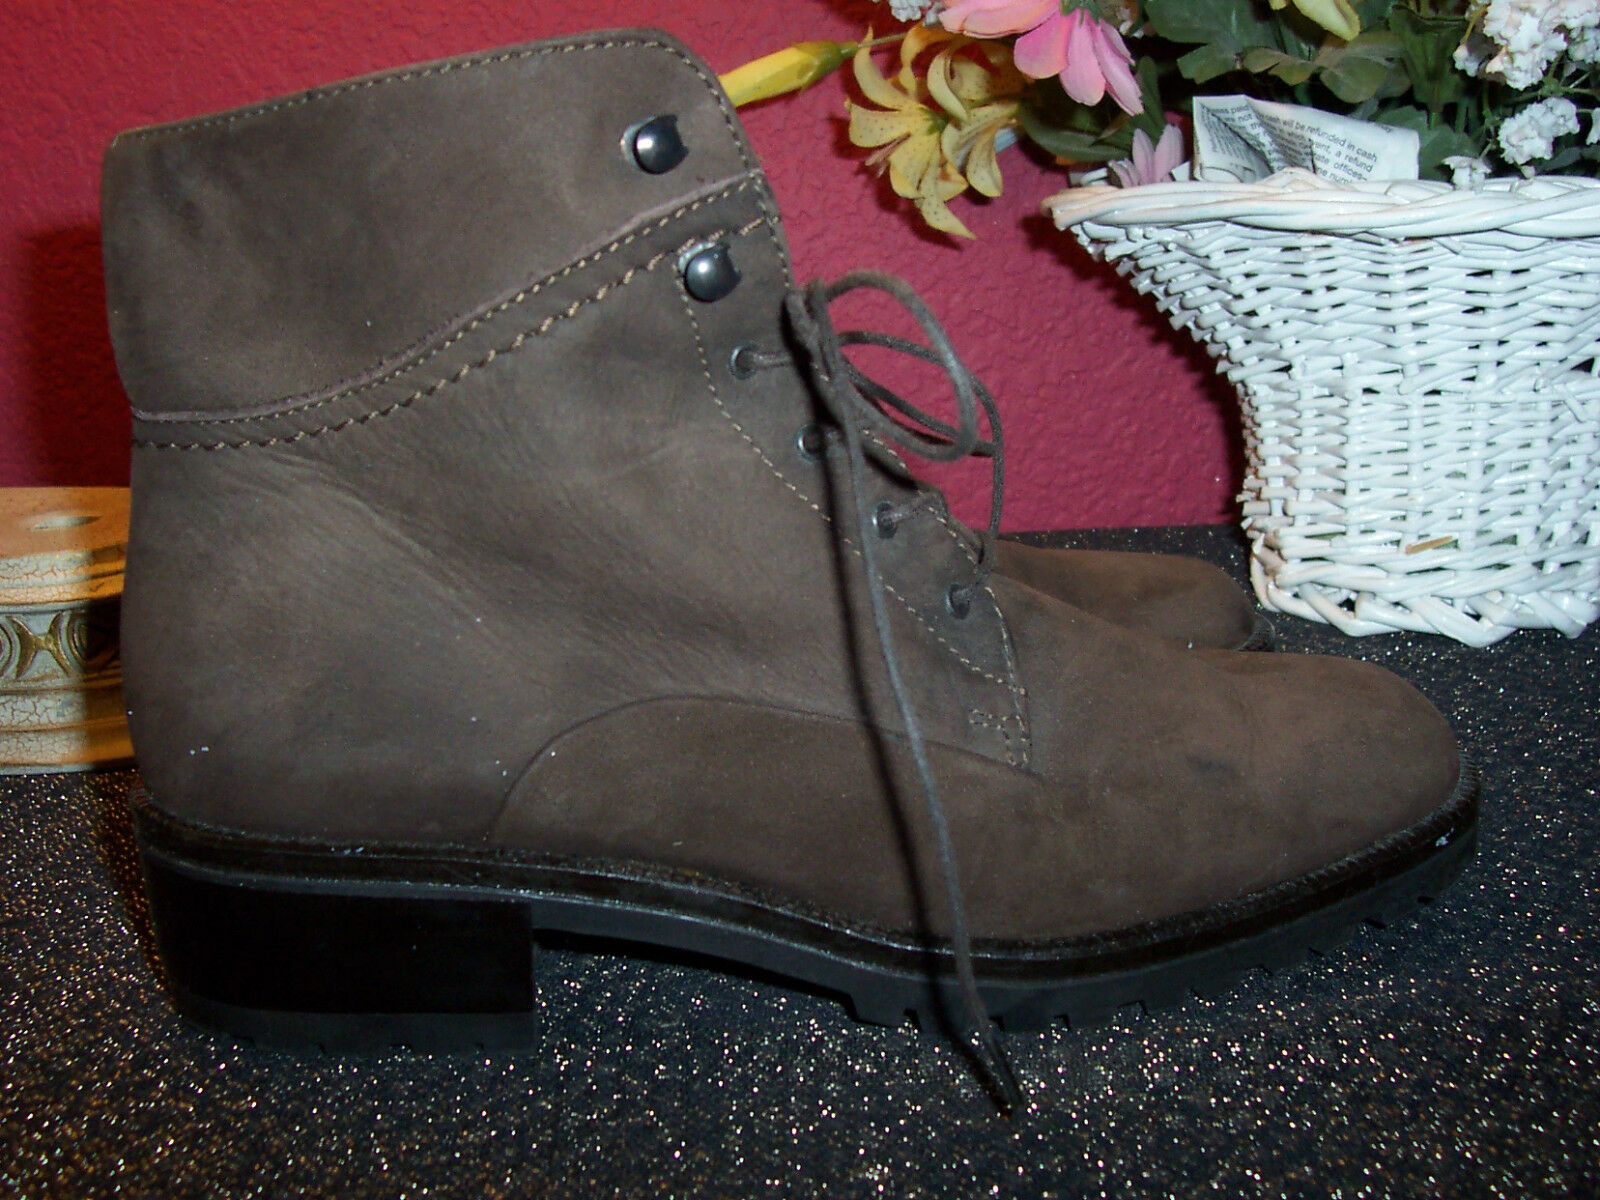 BALLY ITALY size 35M brown suede or nubuck ankle lace up boots new no box